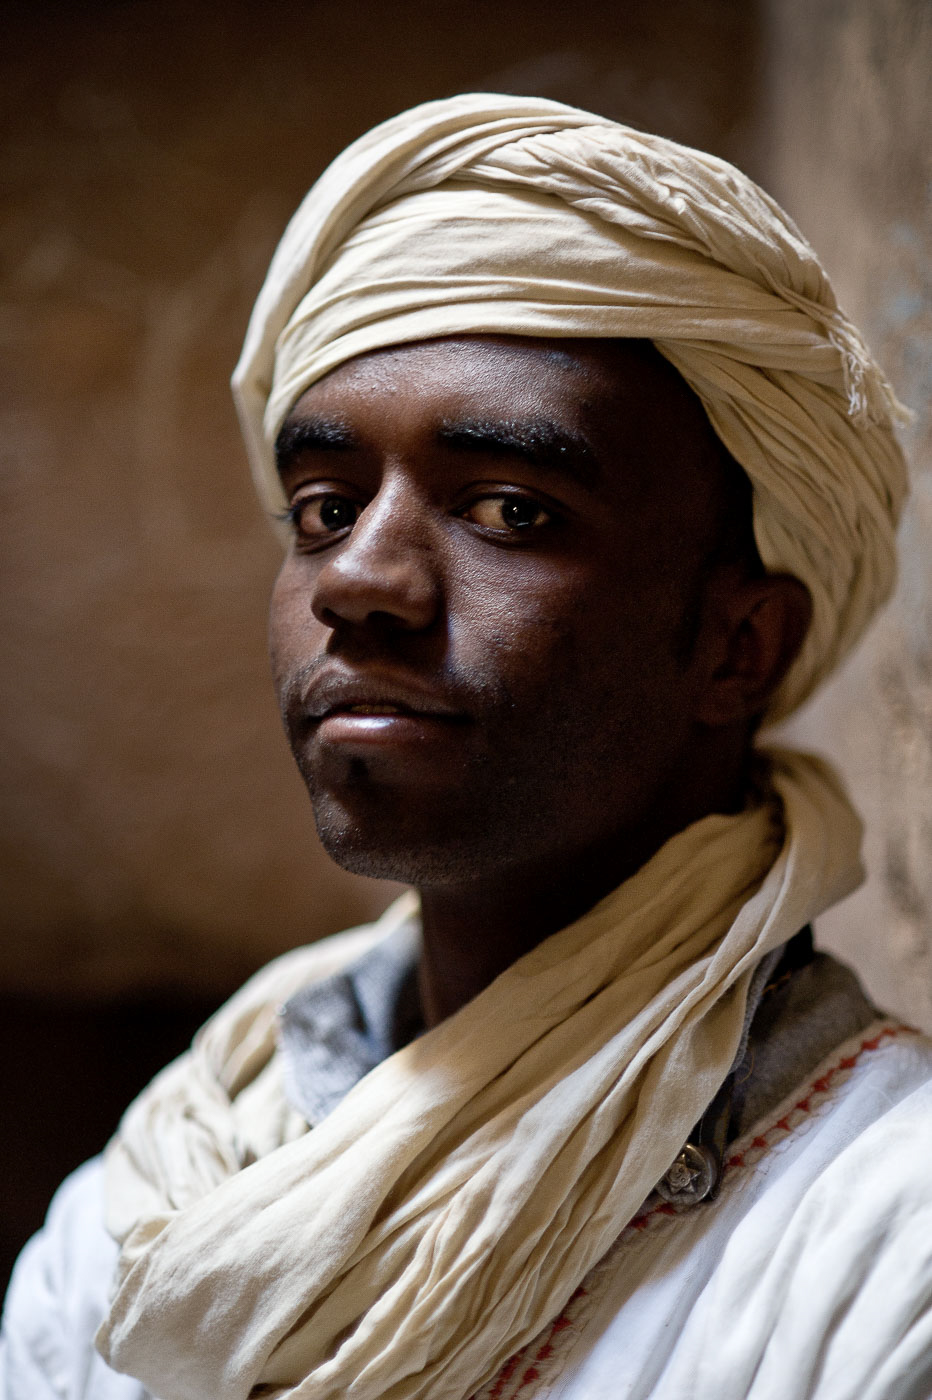 portrait-travel-photographer-man-turban-tamegroute-morocco-africa